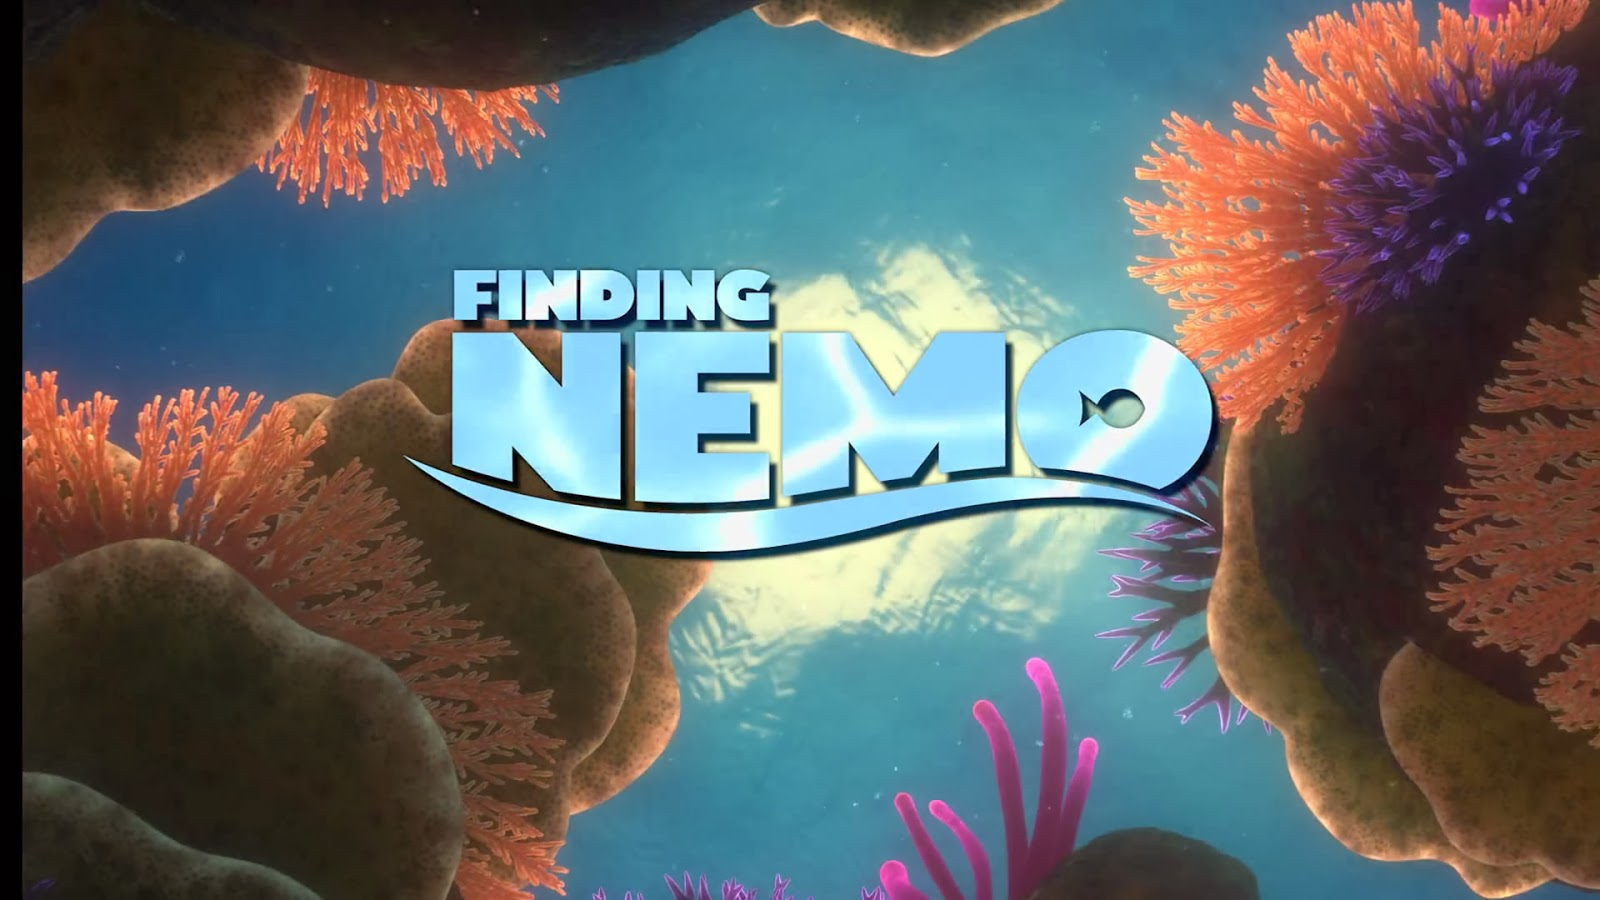 Finding nemo release date